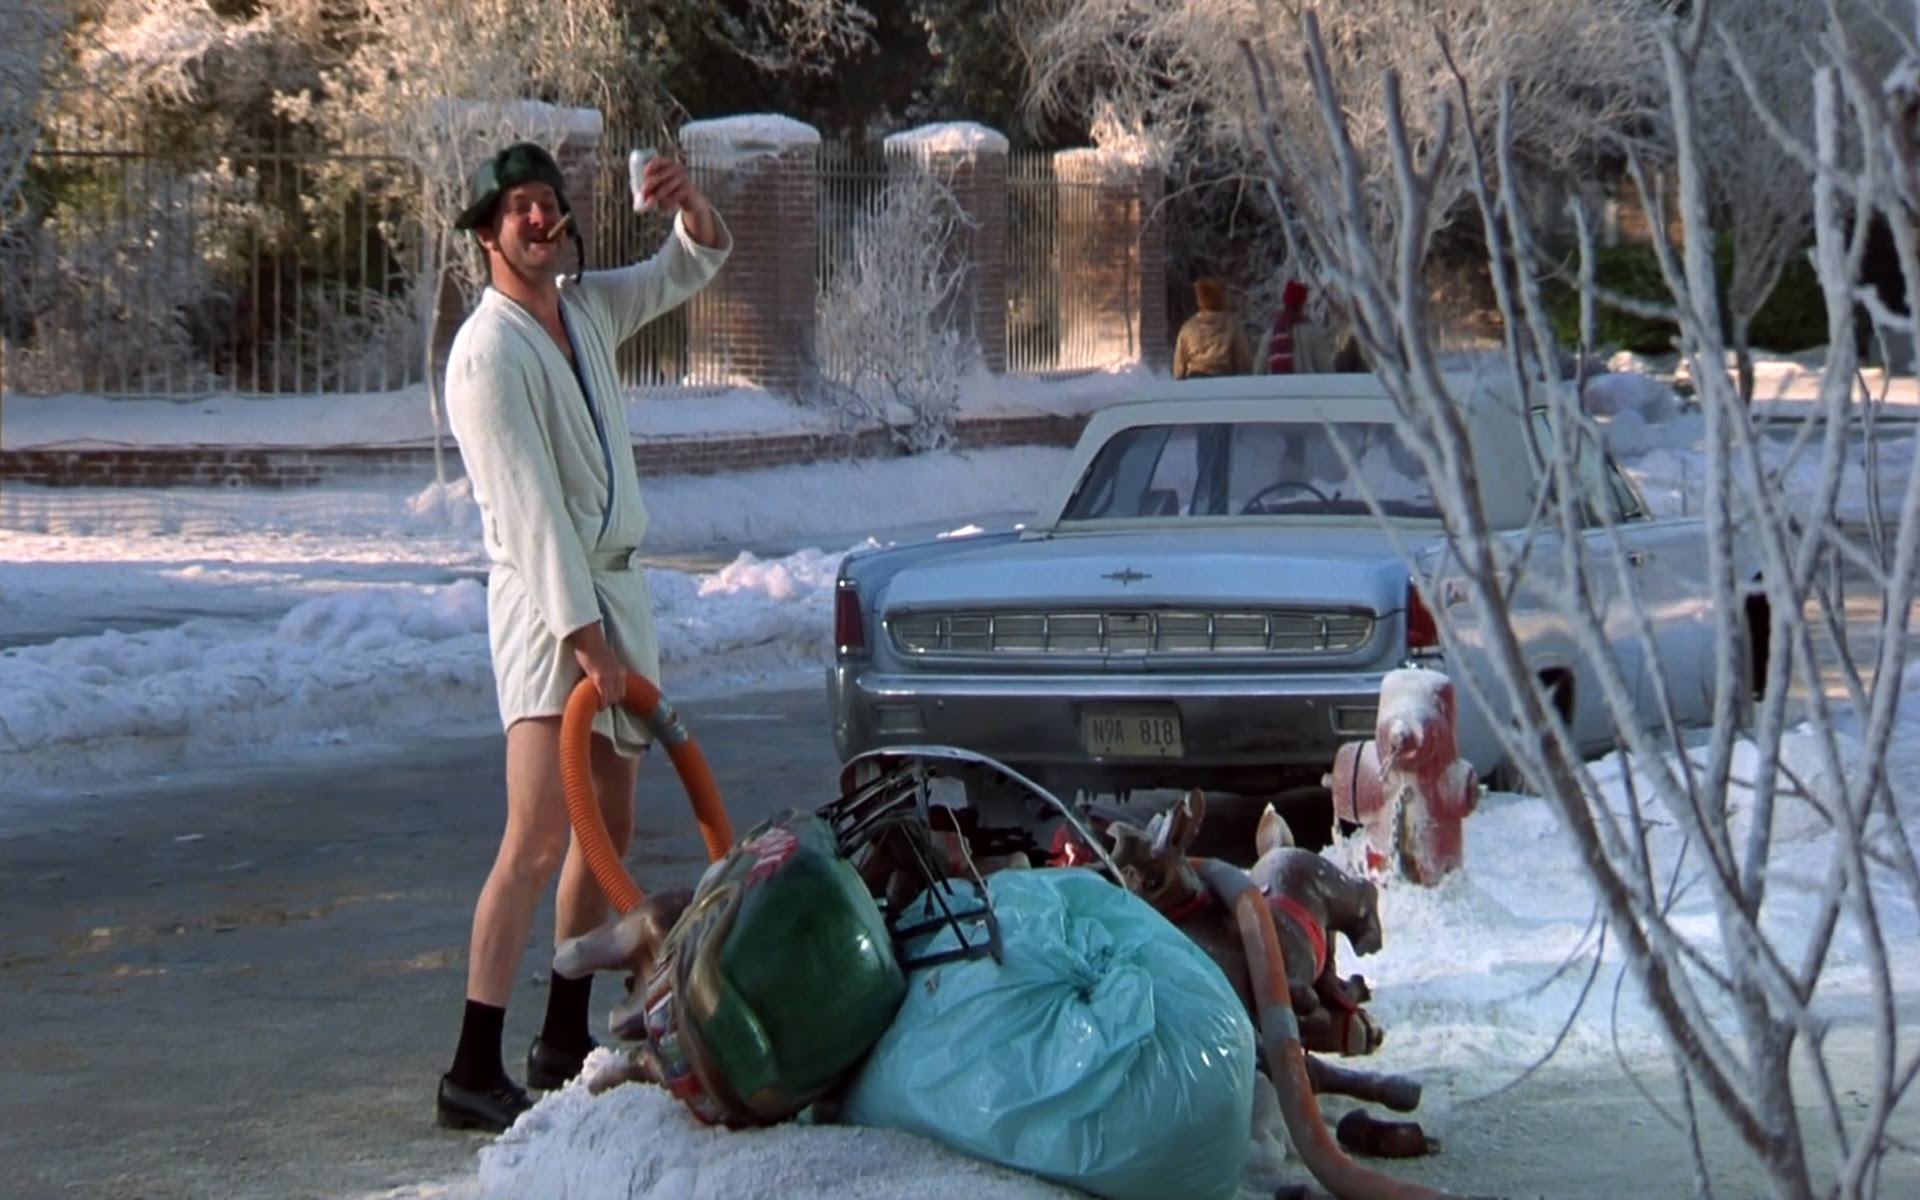 Christmas Vacation Wallpaper 78 Images Images, Photos, Reviews